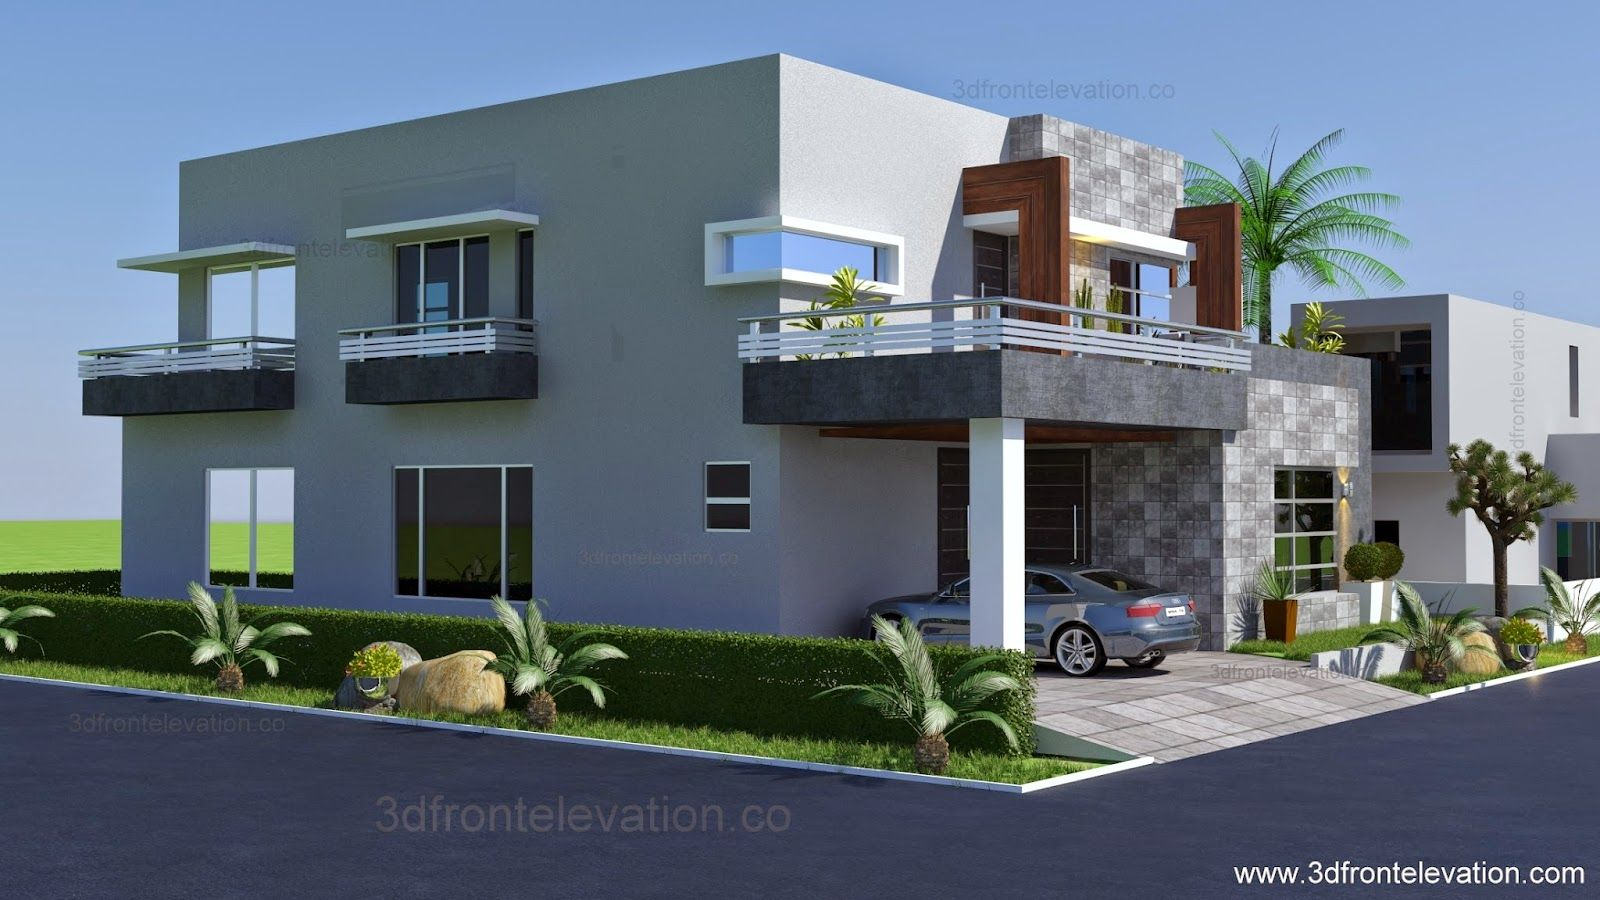 1 kanal contemporary house plan design create modern house 1 kanal contemporary house plan design create